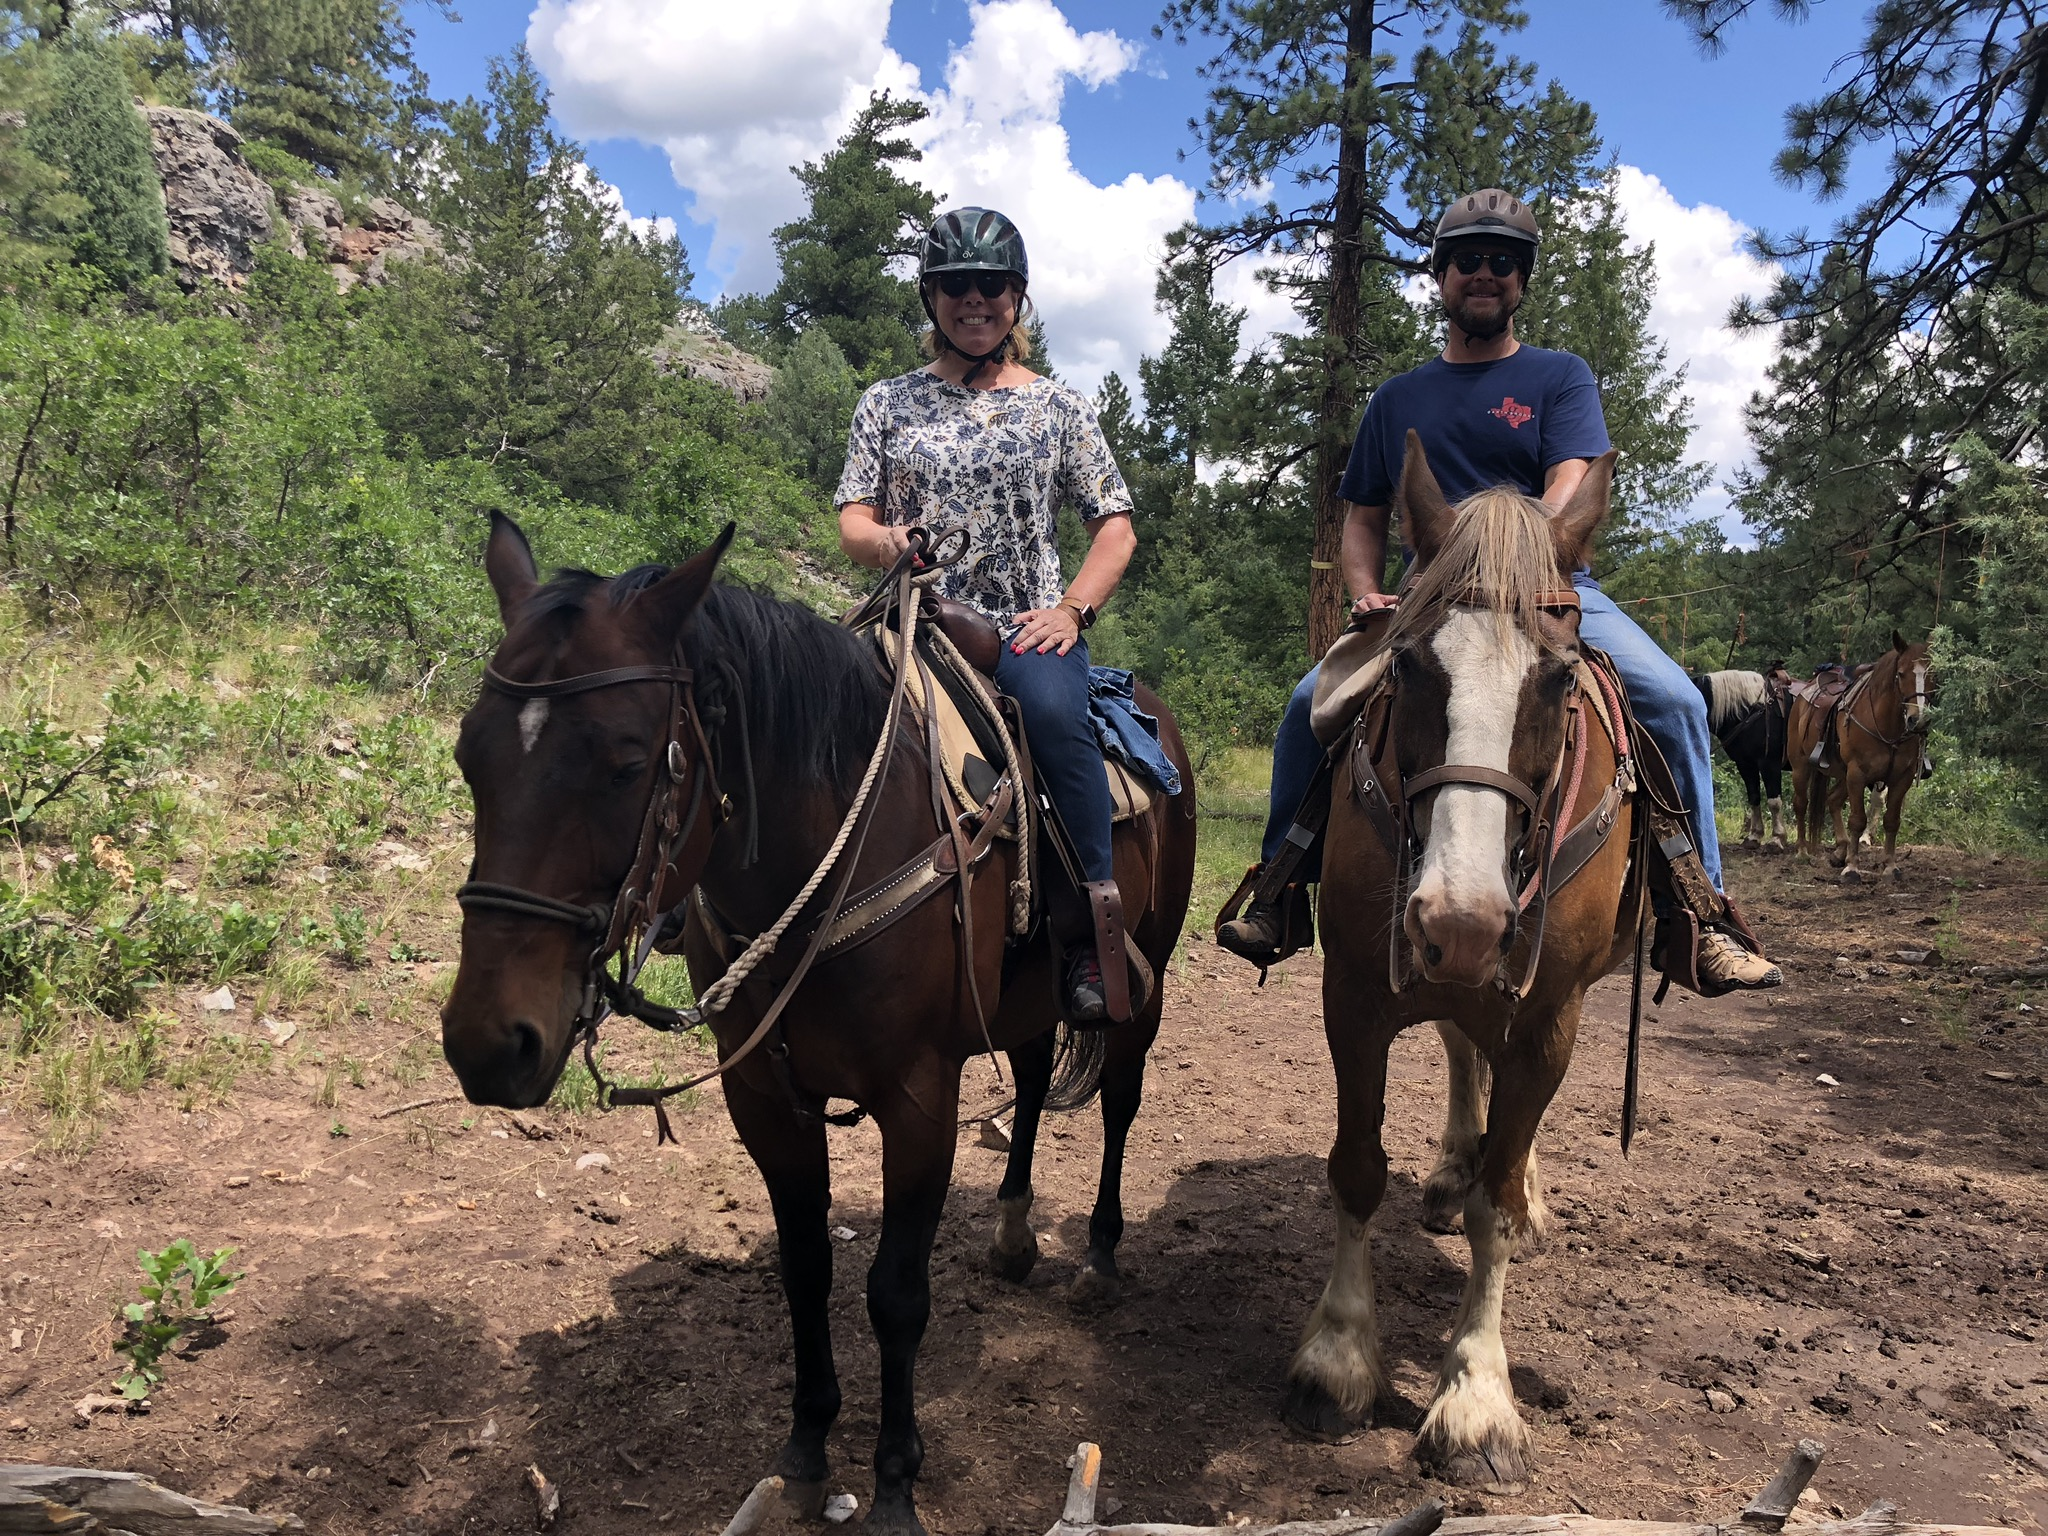 34th Anniversary ride in the San Juan Mountains